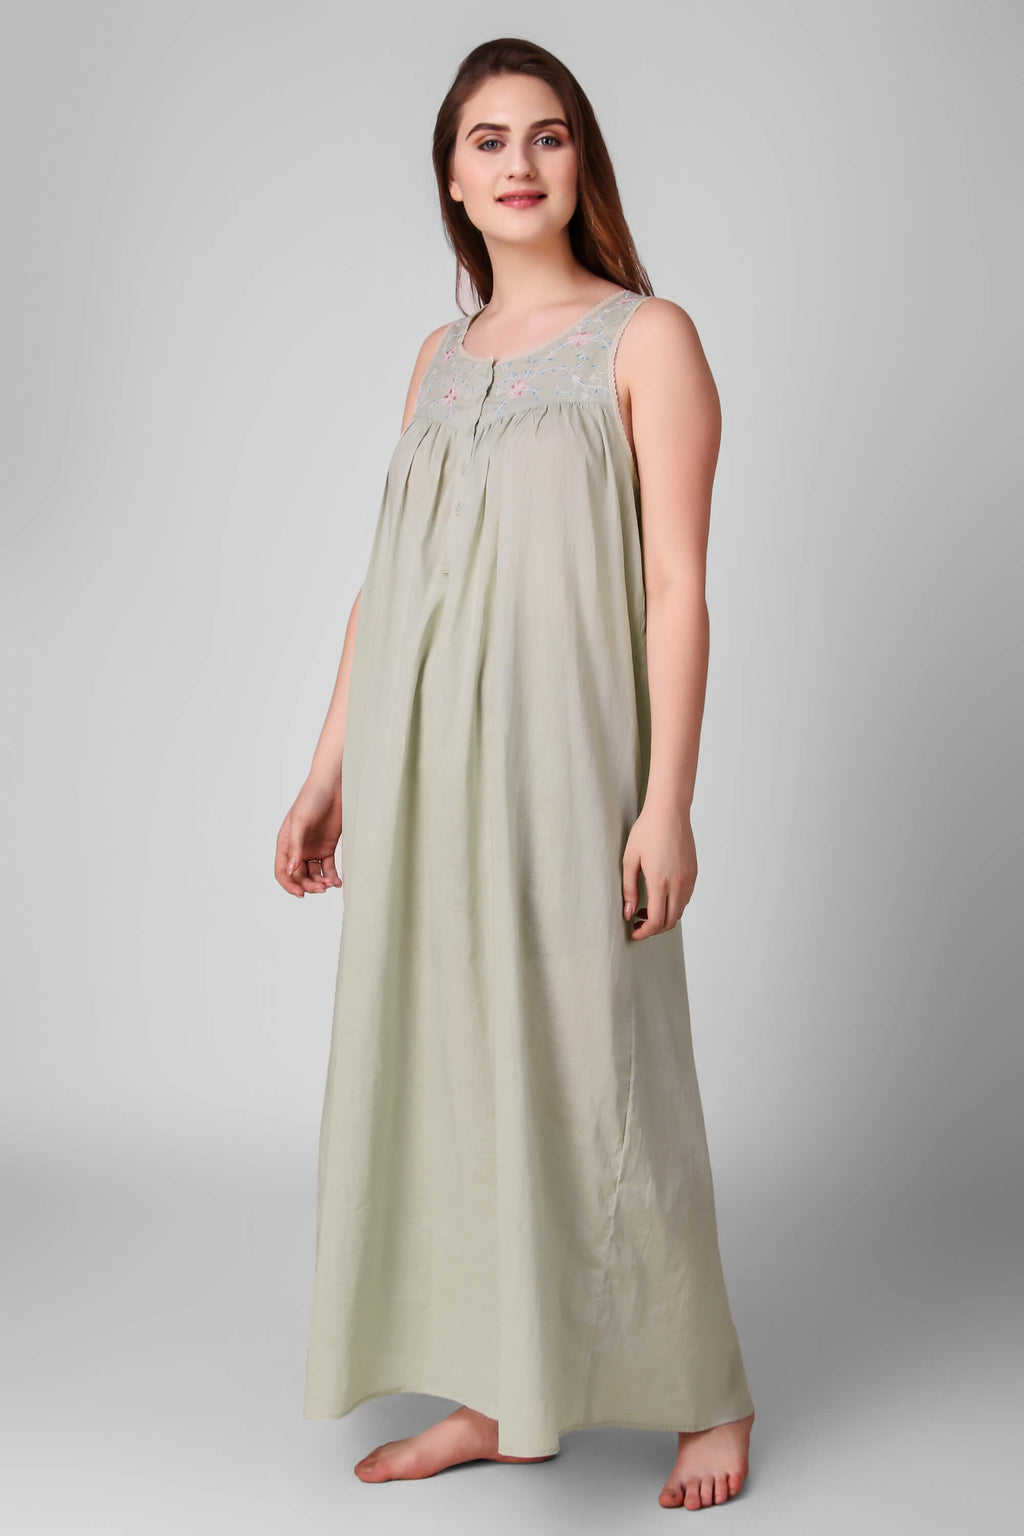 Lara, Nightdress